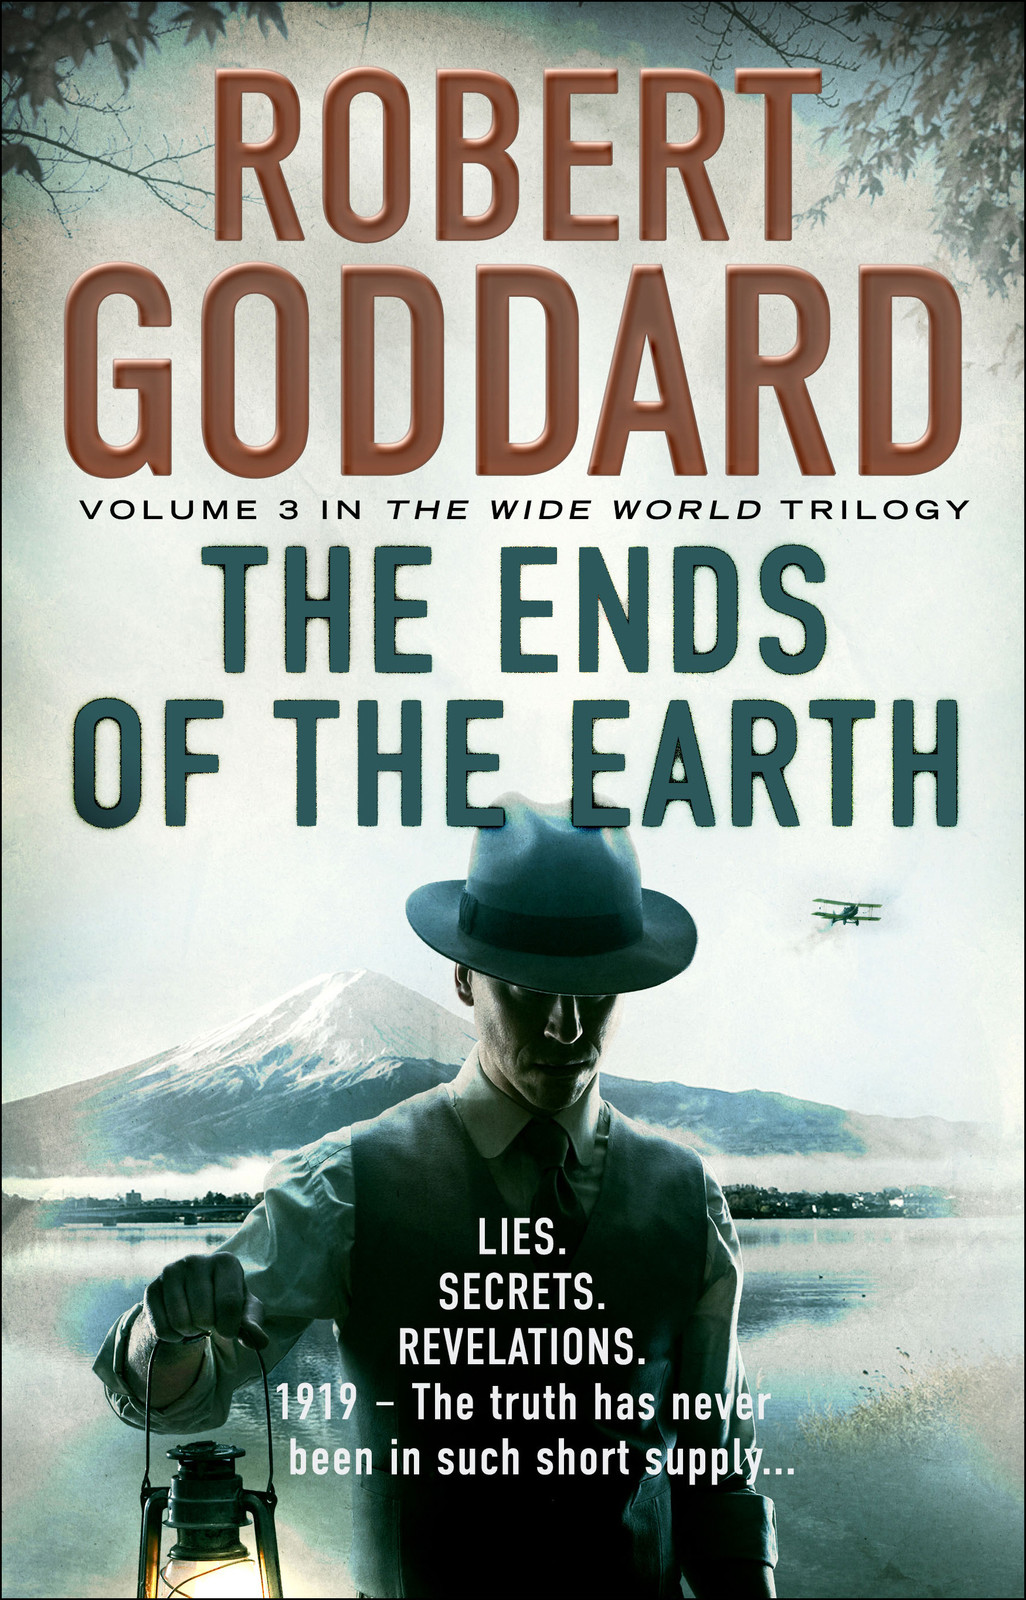 The Ends of the Earth by Robert Goddard image